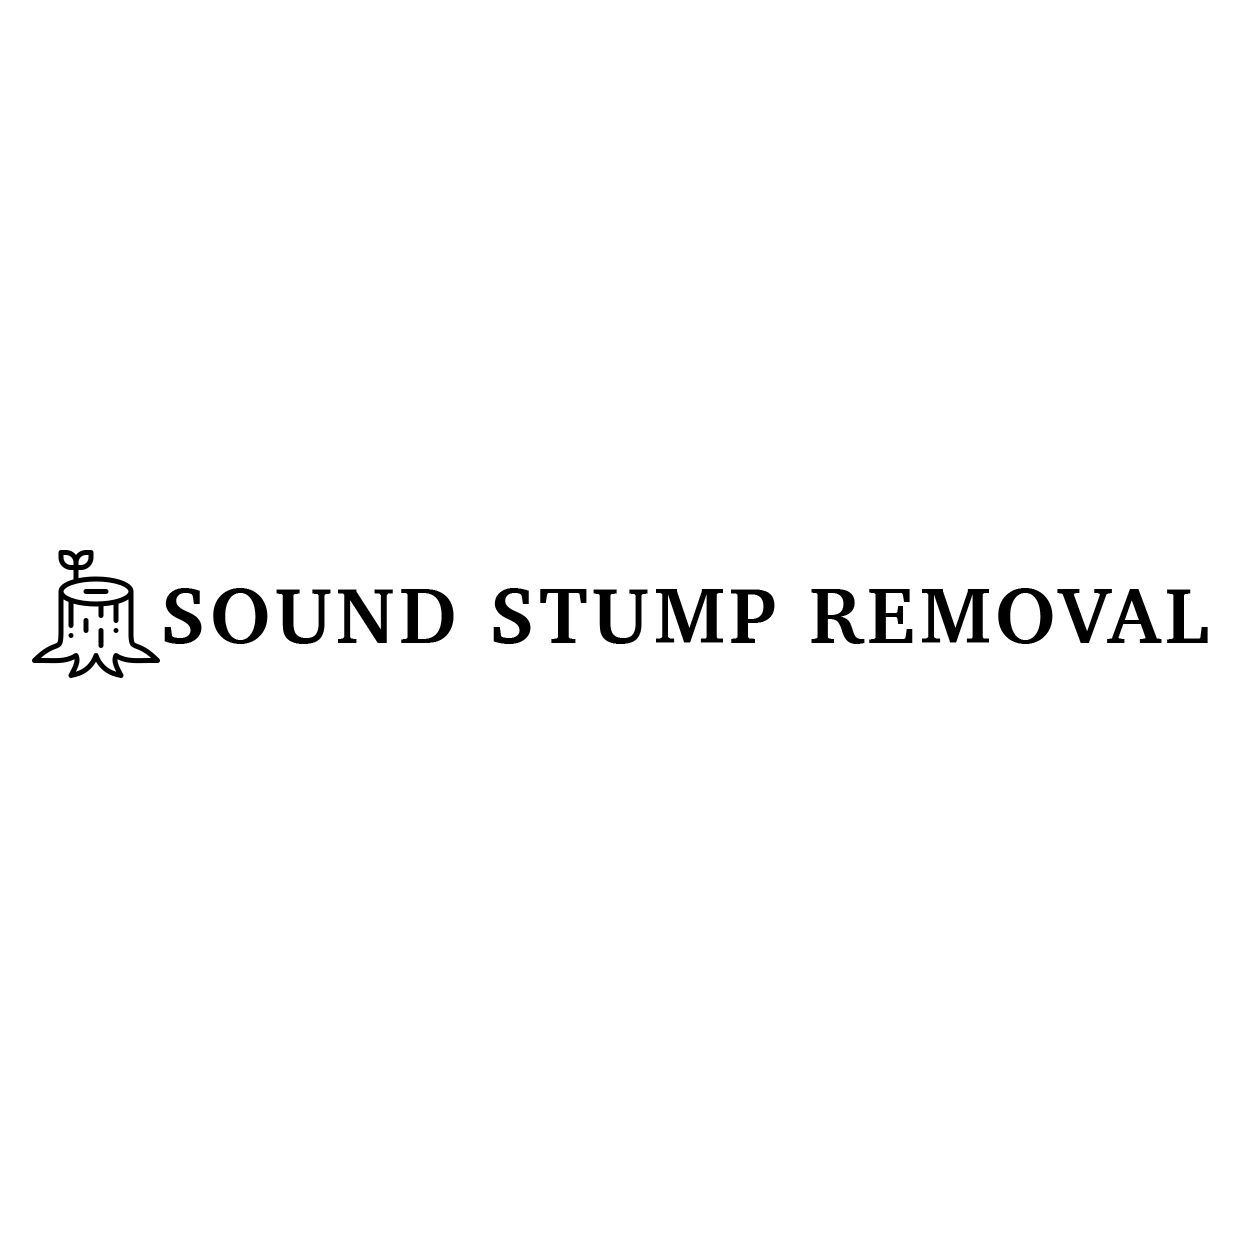 Sound Stump Removal